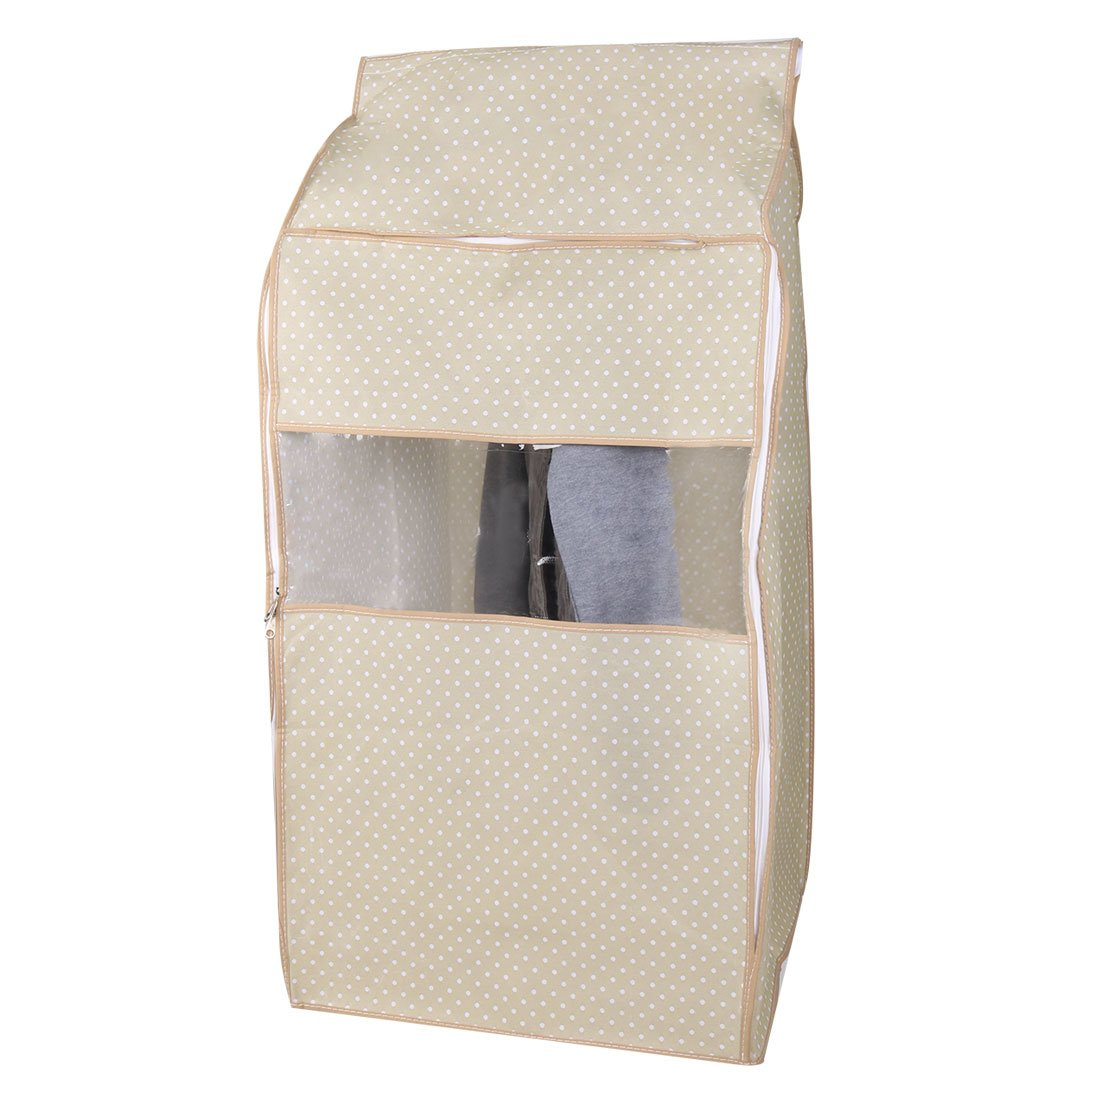 uxcell Non-Woven Fabric Home Zippered Garment Suit Clothing Protector Cover Bag 95 x 50 x 53cm, White Dot